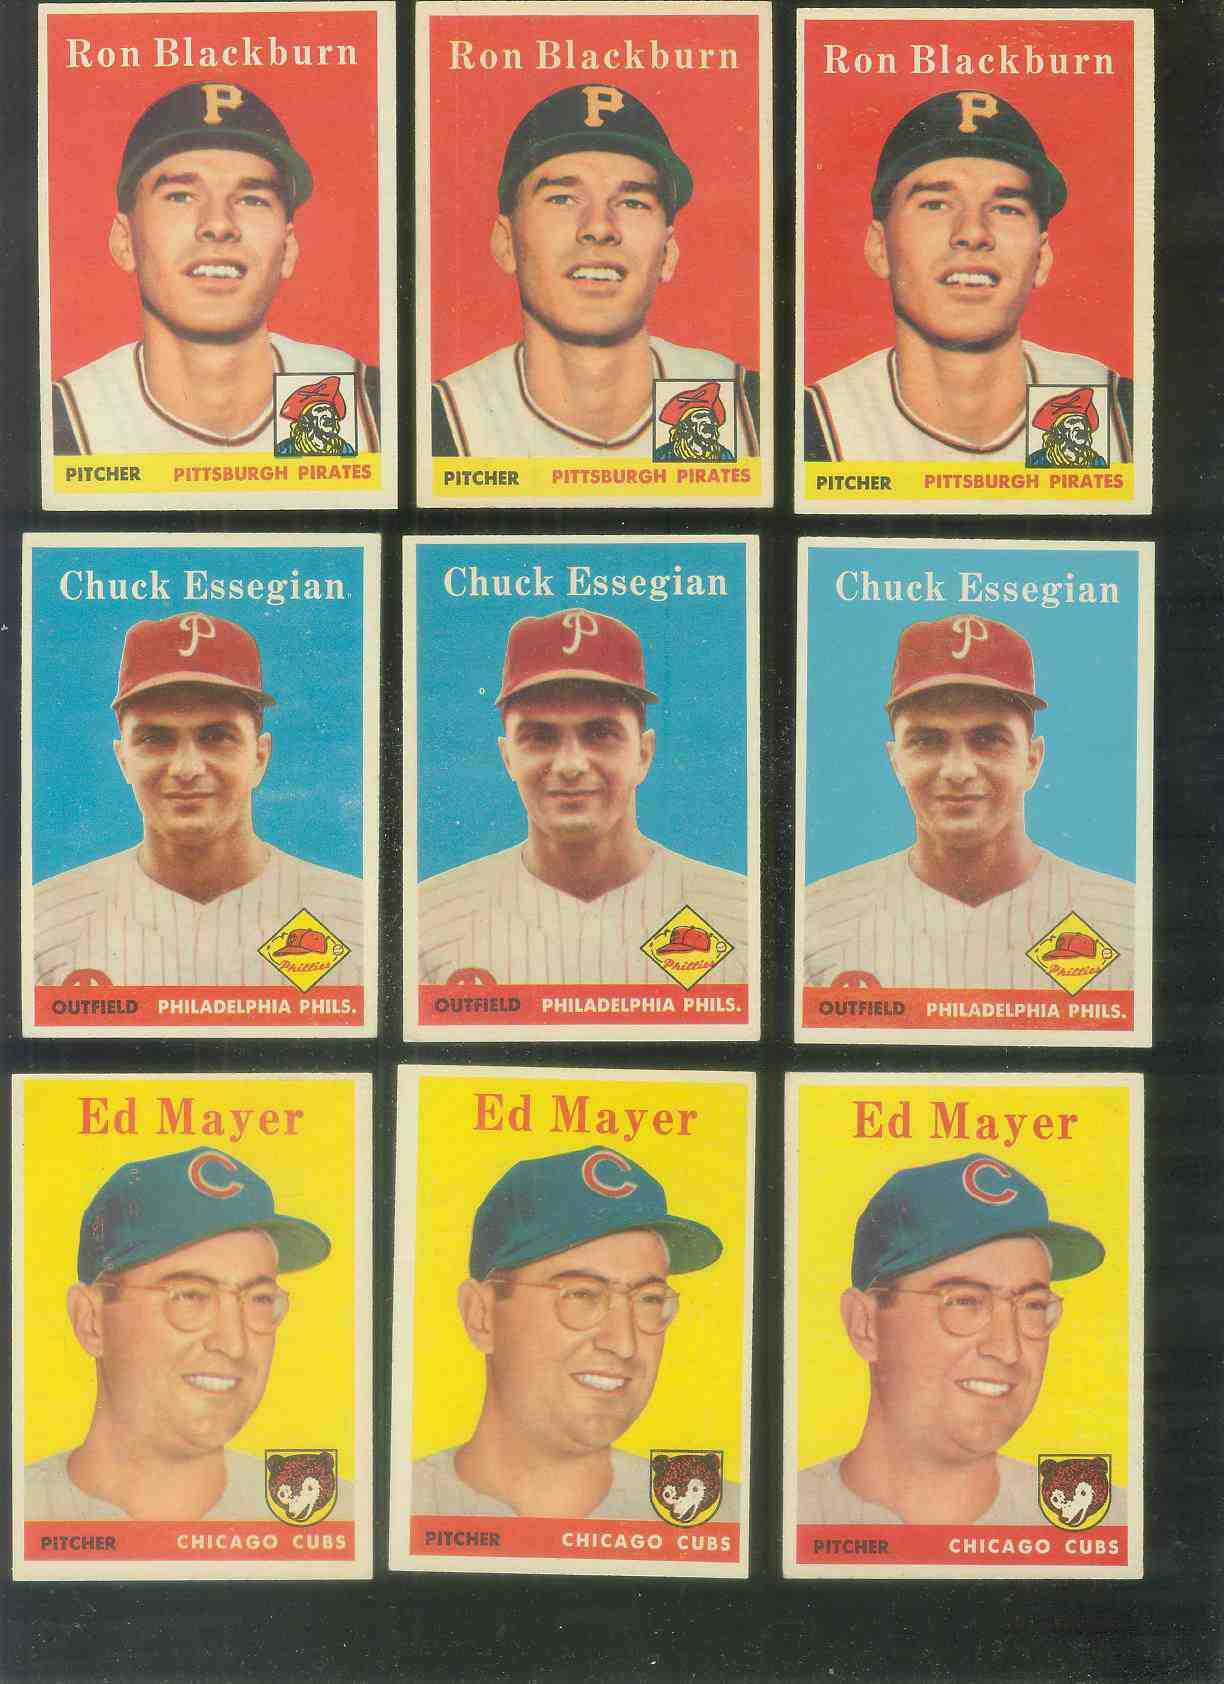 1958 Topps #459 Ron Blackburn (Pirates) Baseball cards value